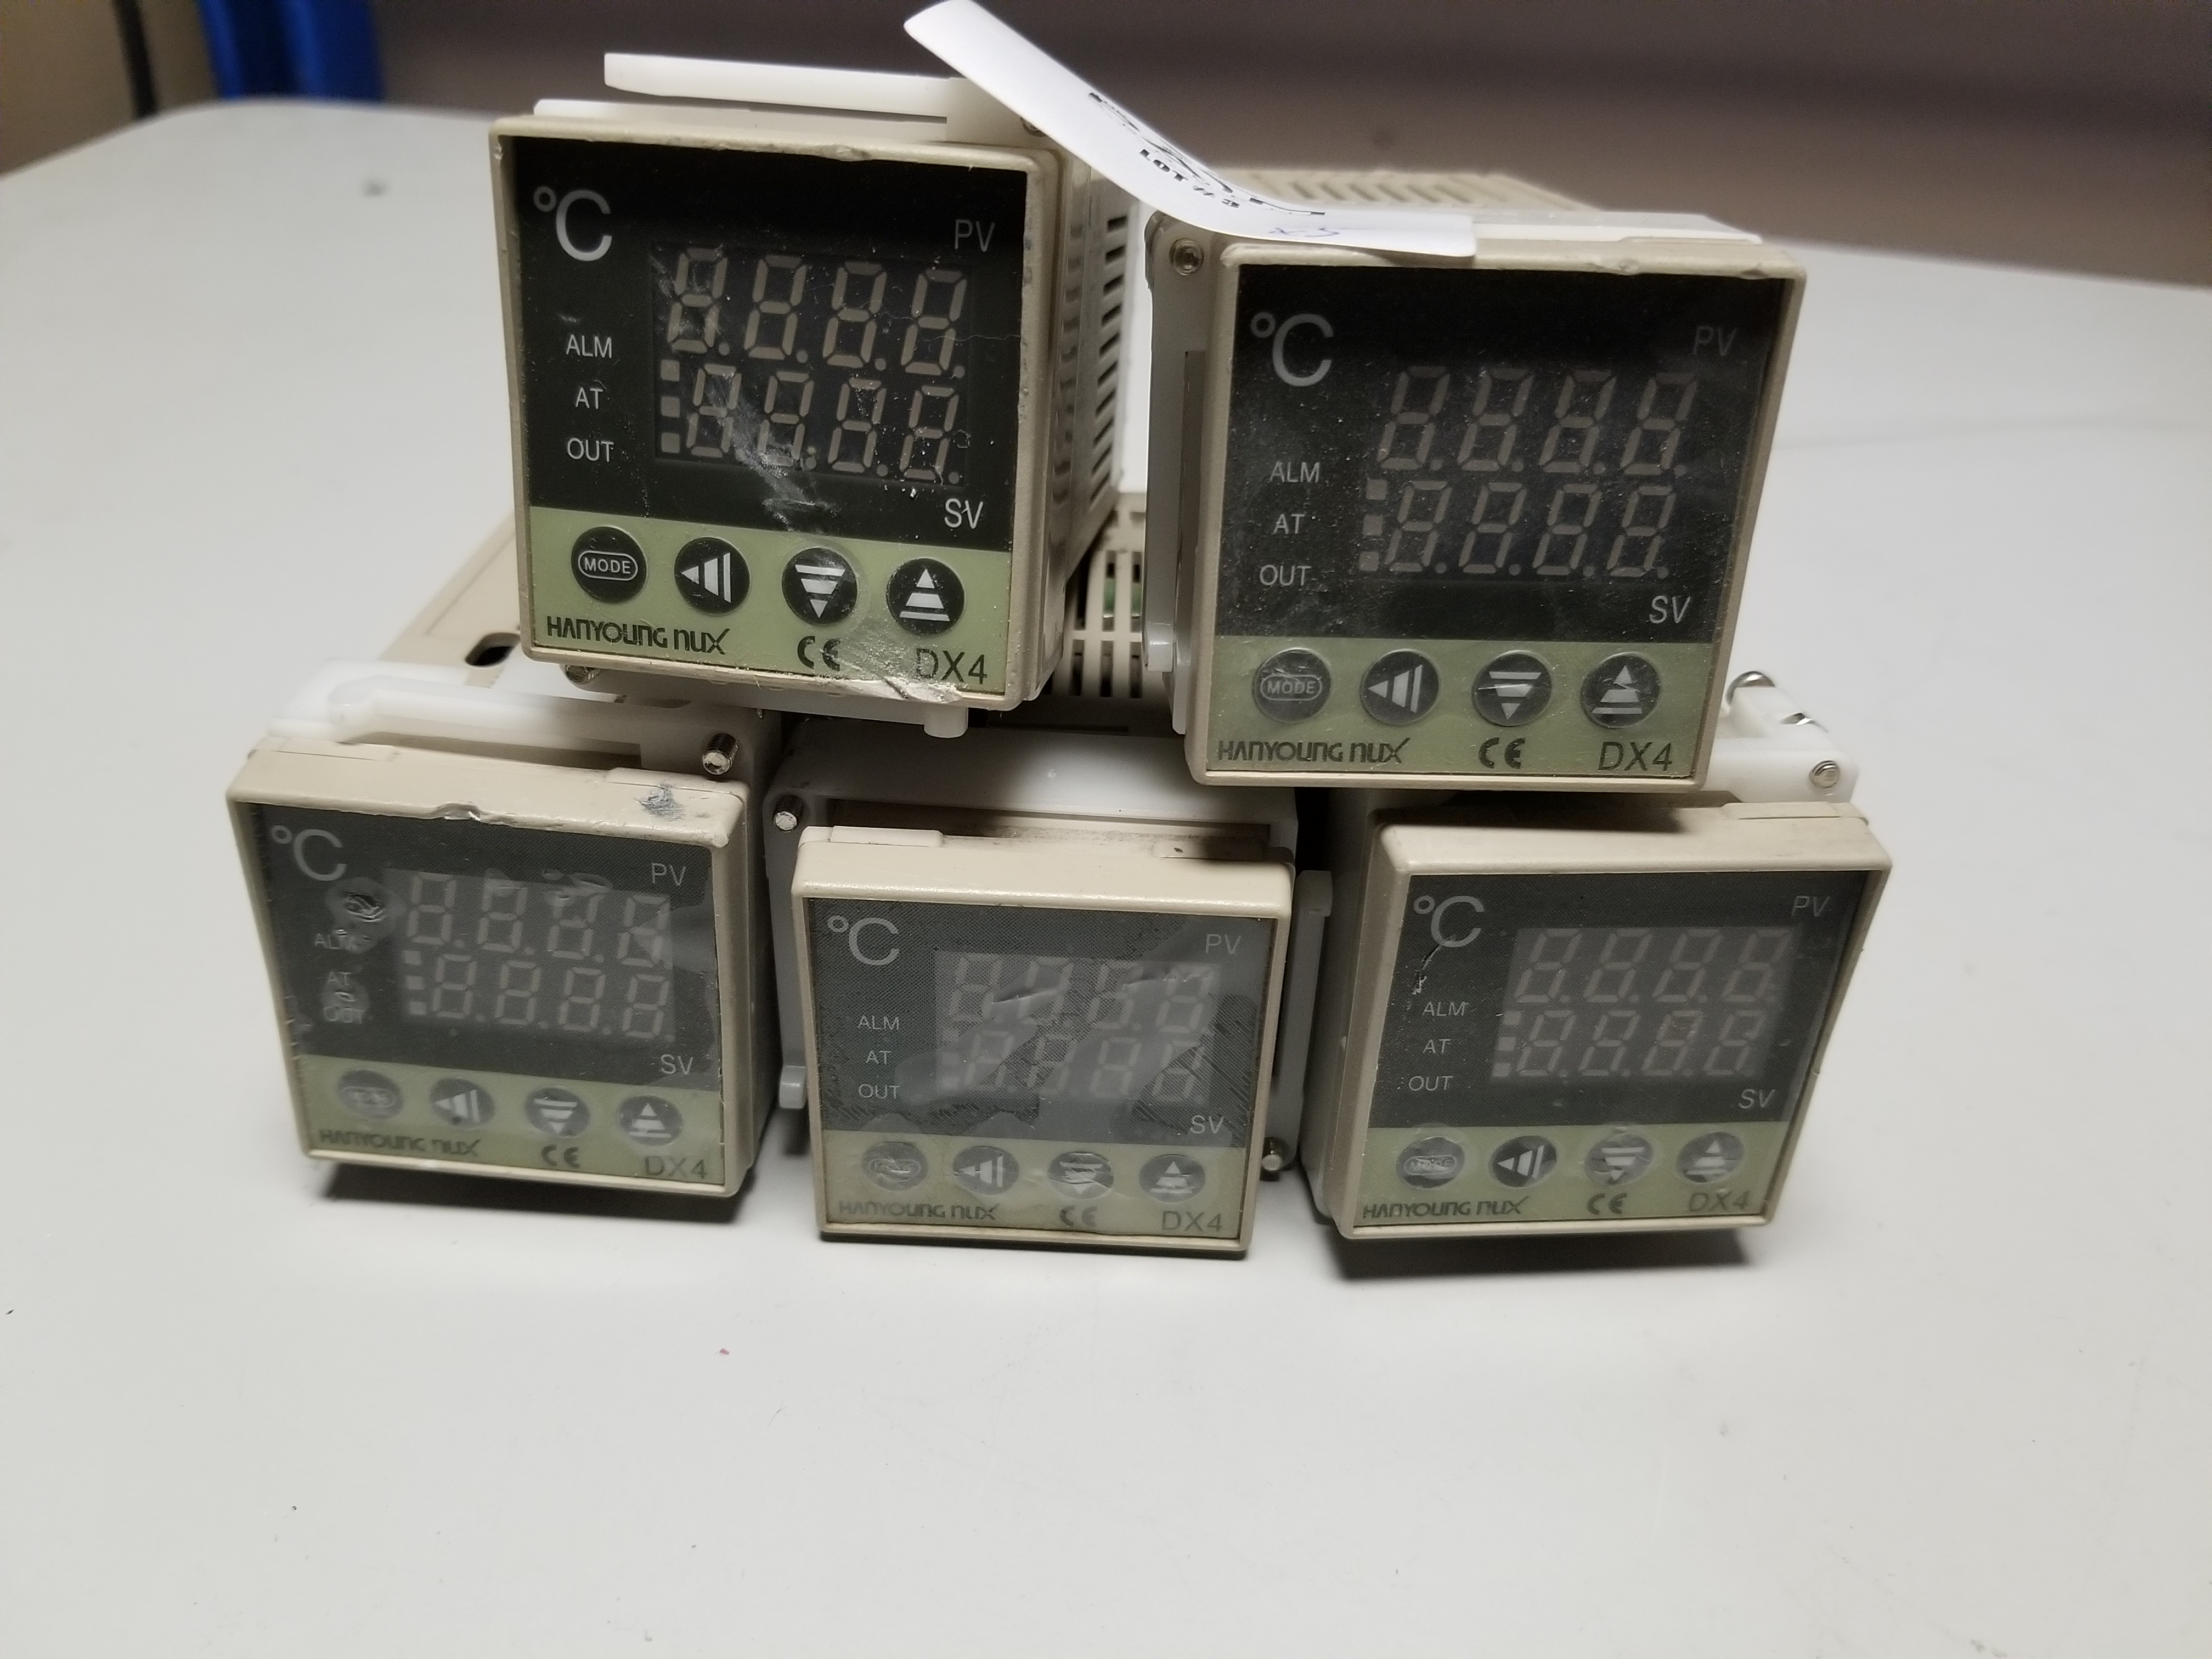 Lot 3 - LOT OF HANYOUNG TEMPERATURE CONTROLLERS